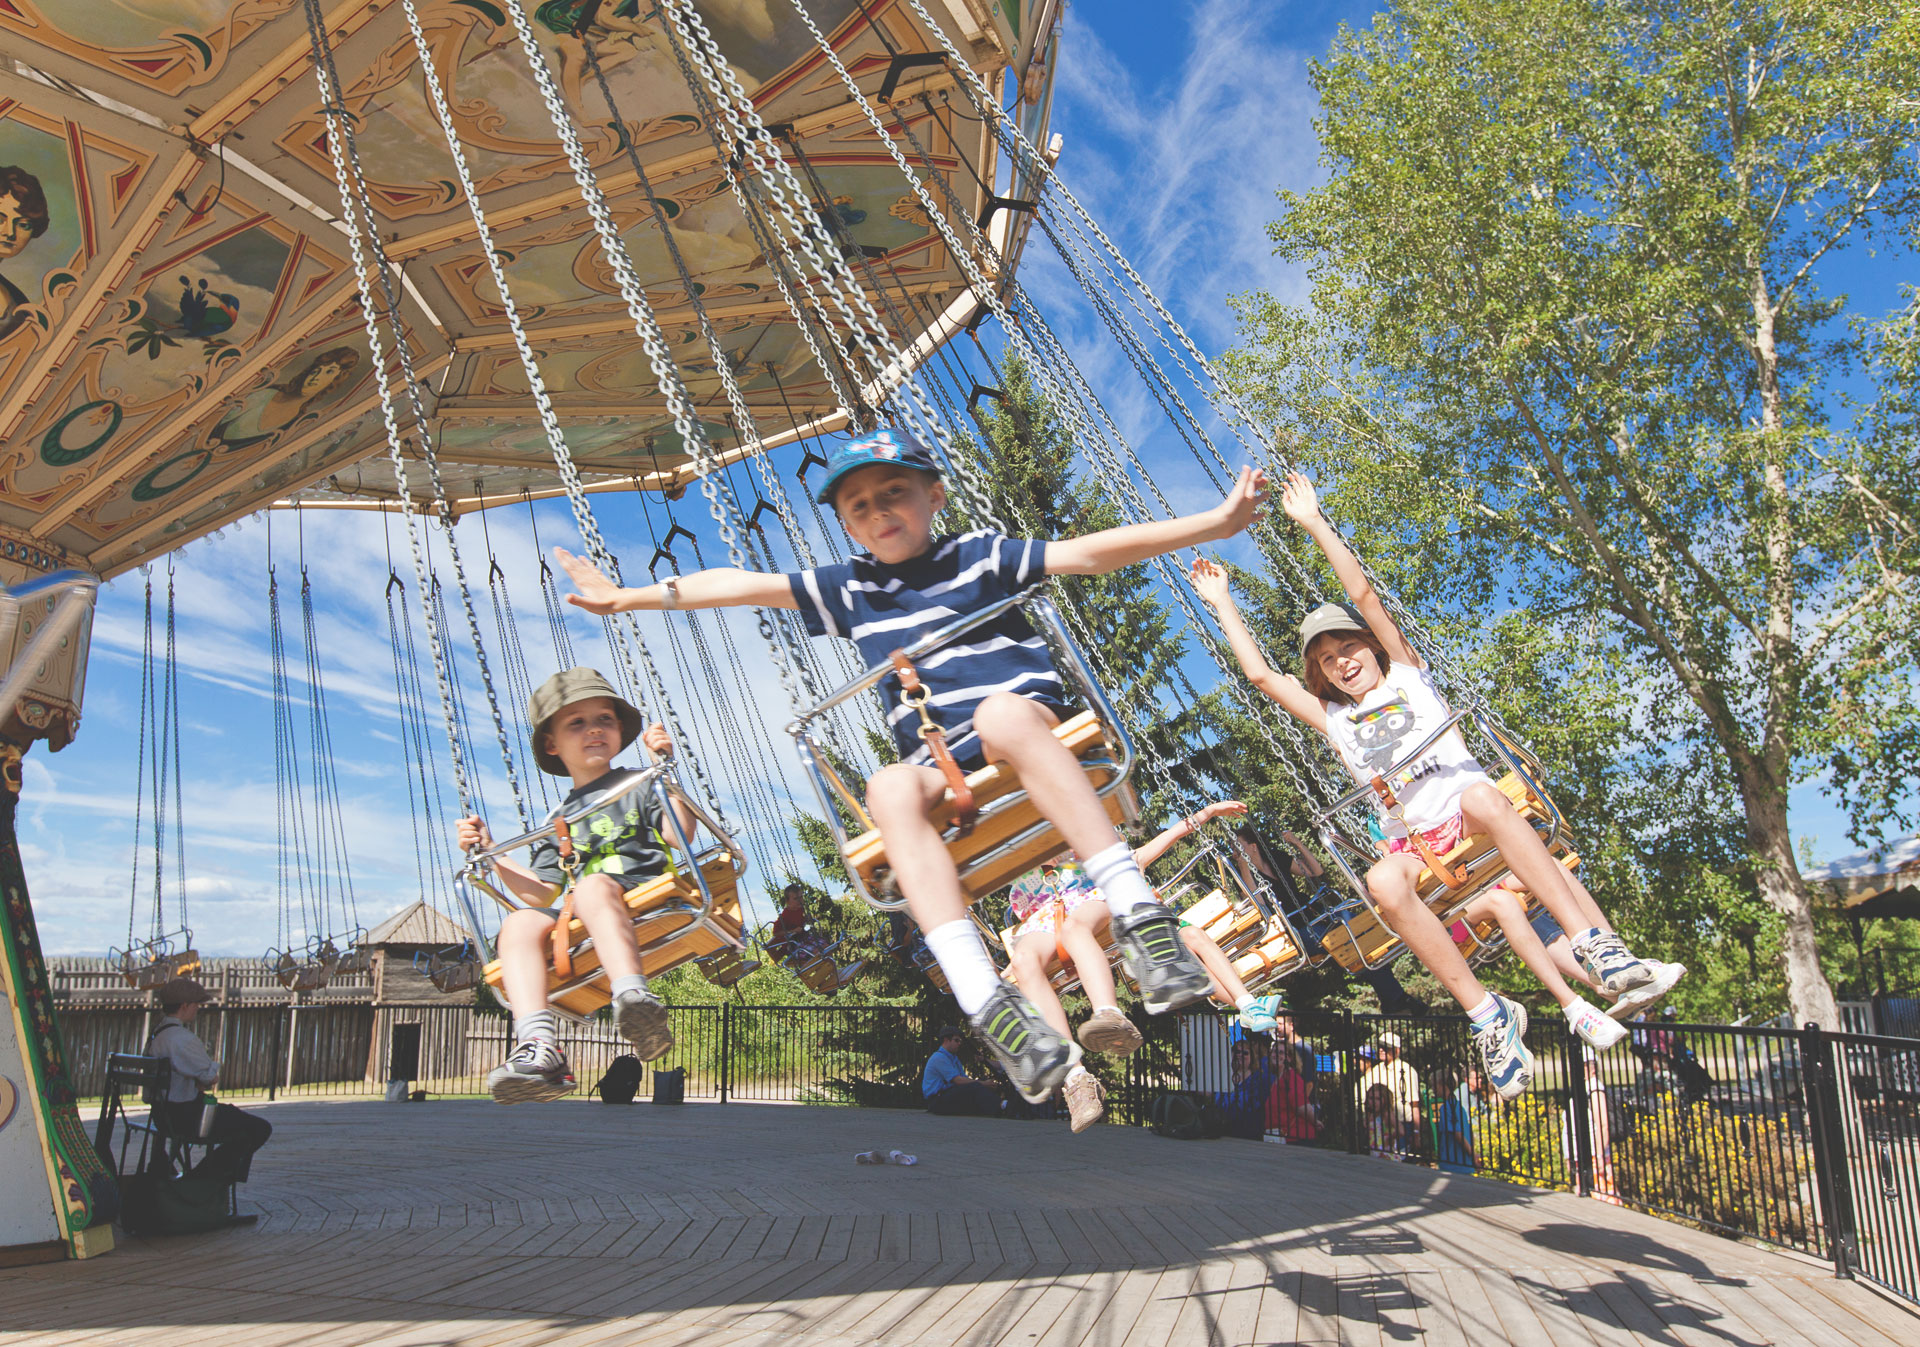 Ride the vintage midway at Heritage Park this summer.